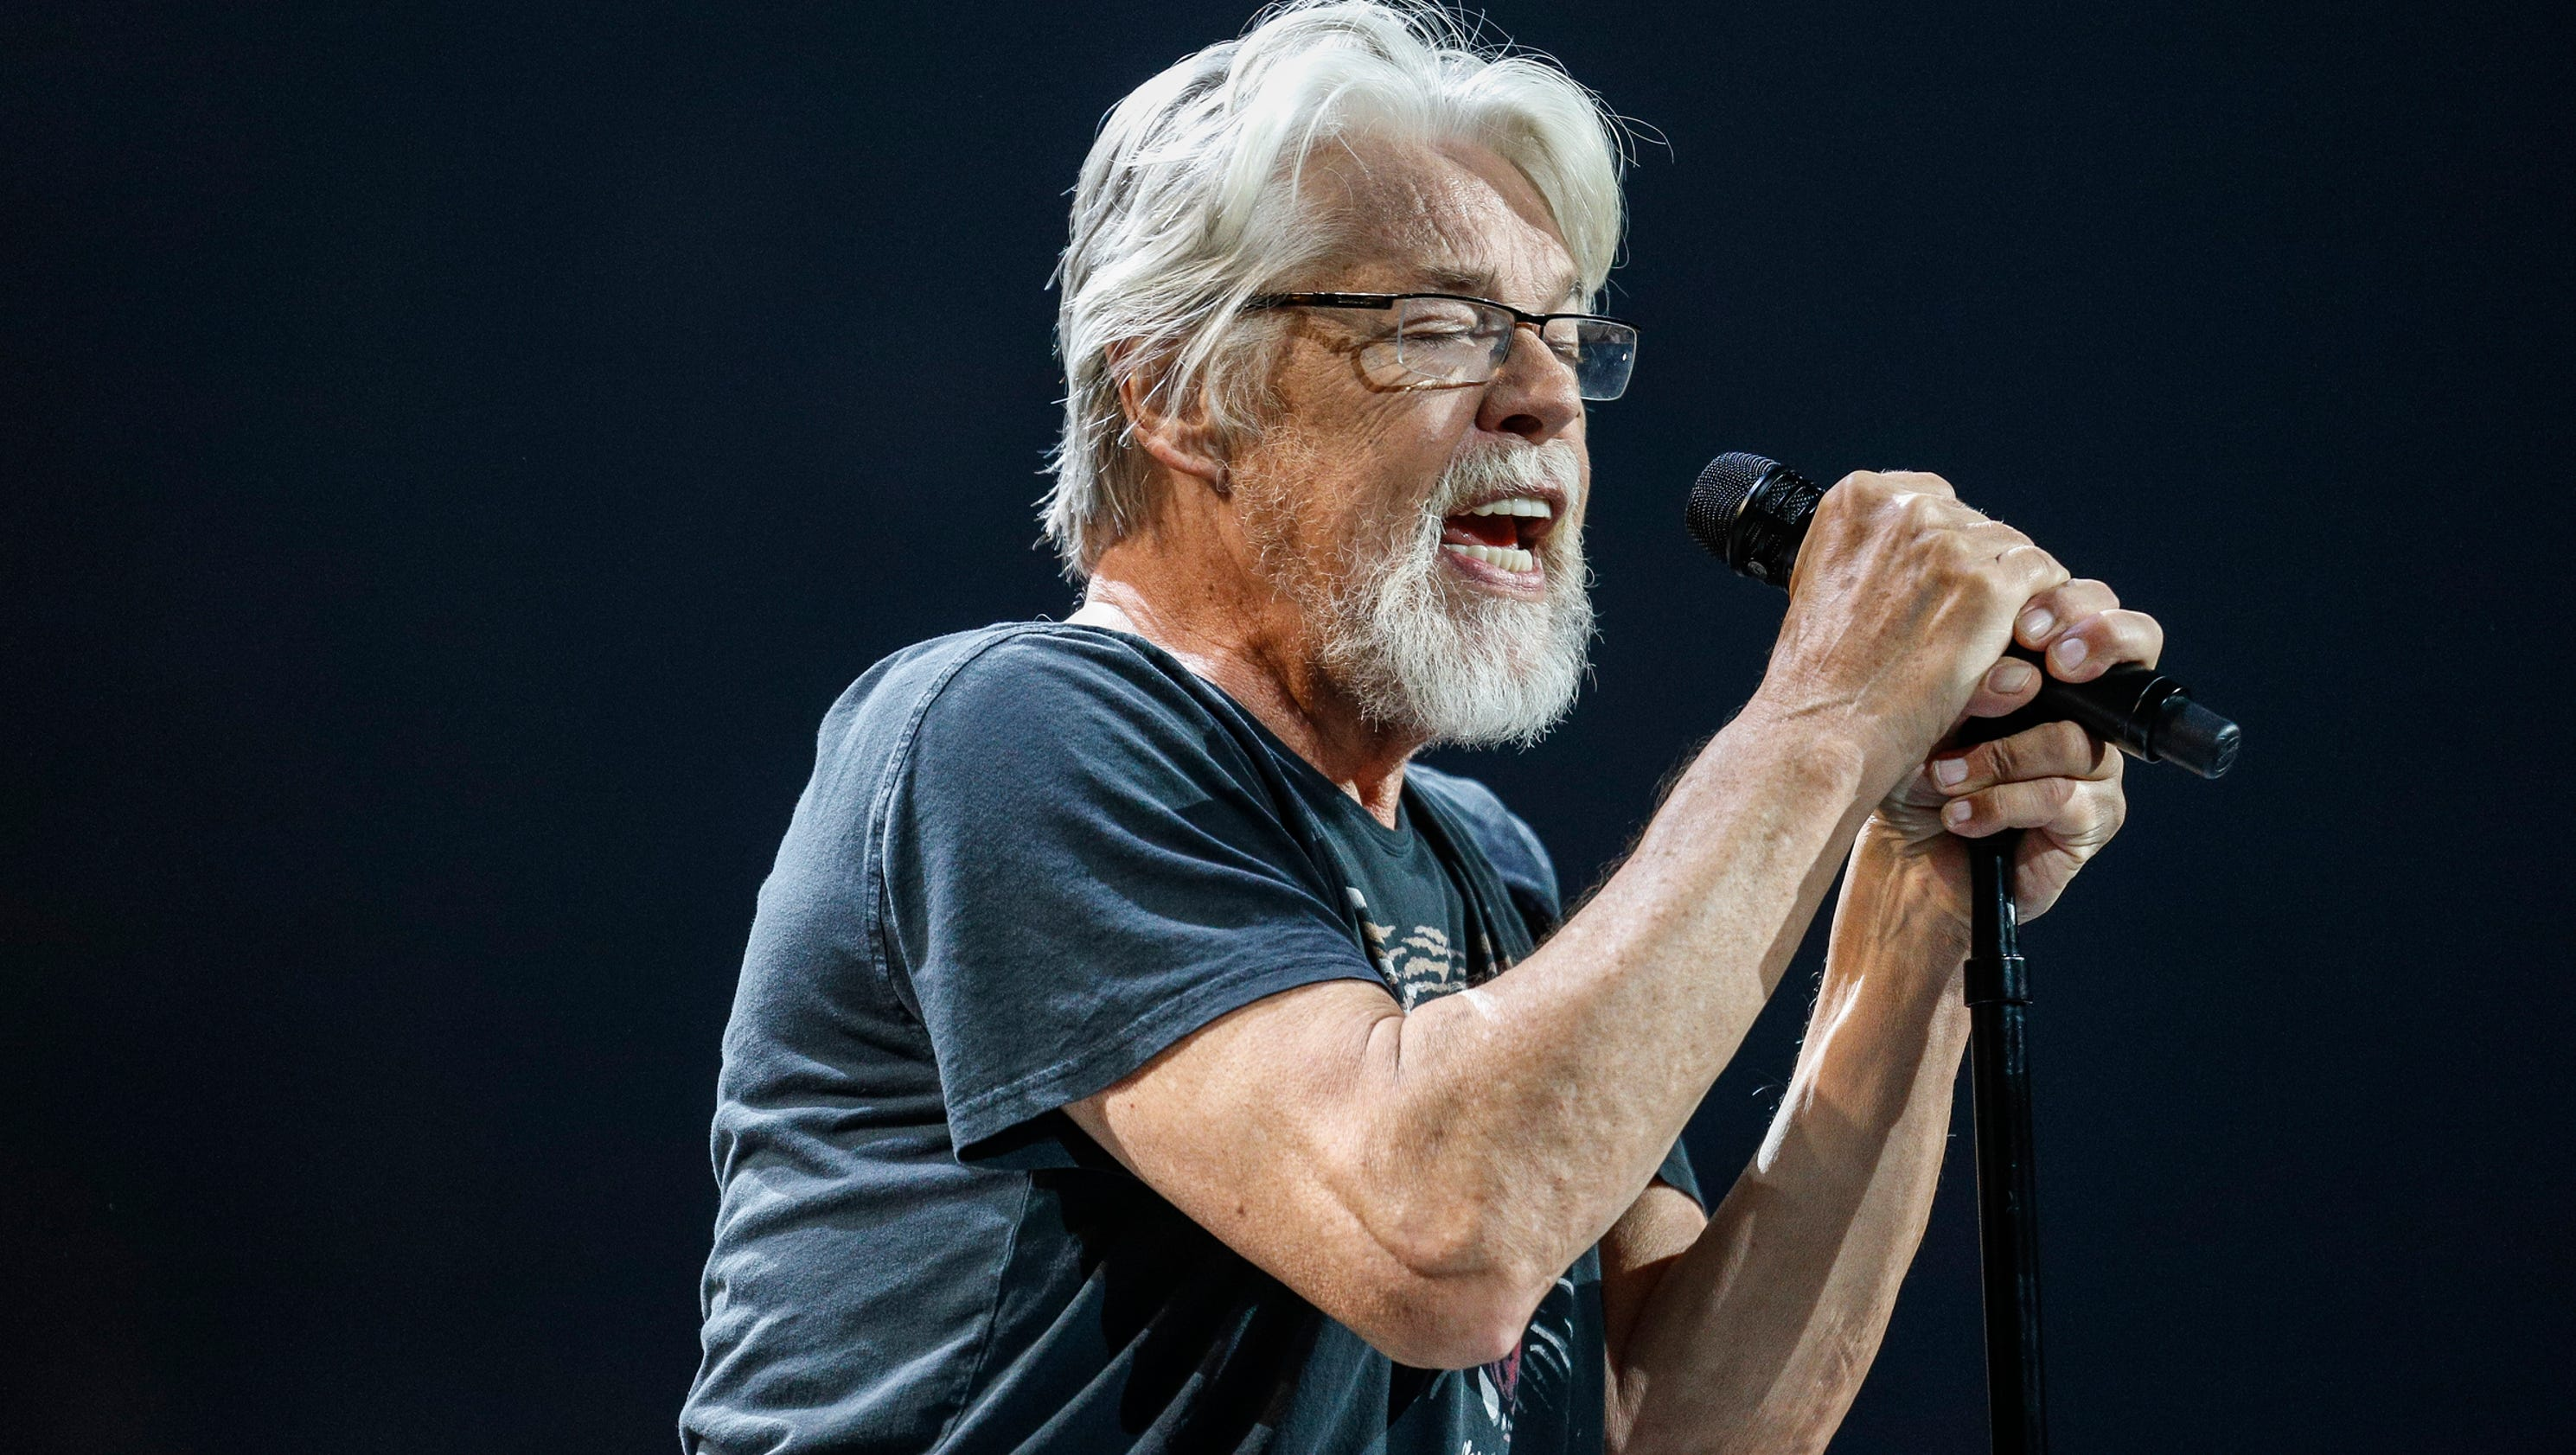 Bob Seger tour to resume in the